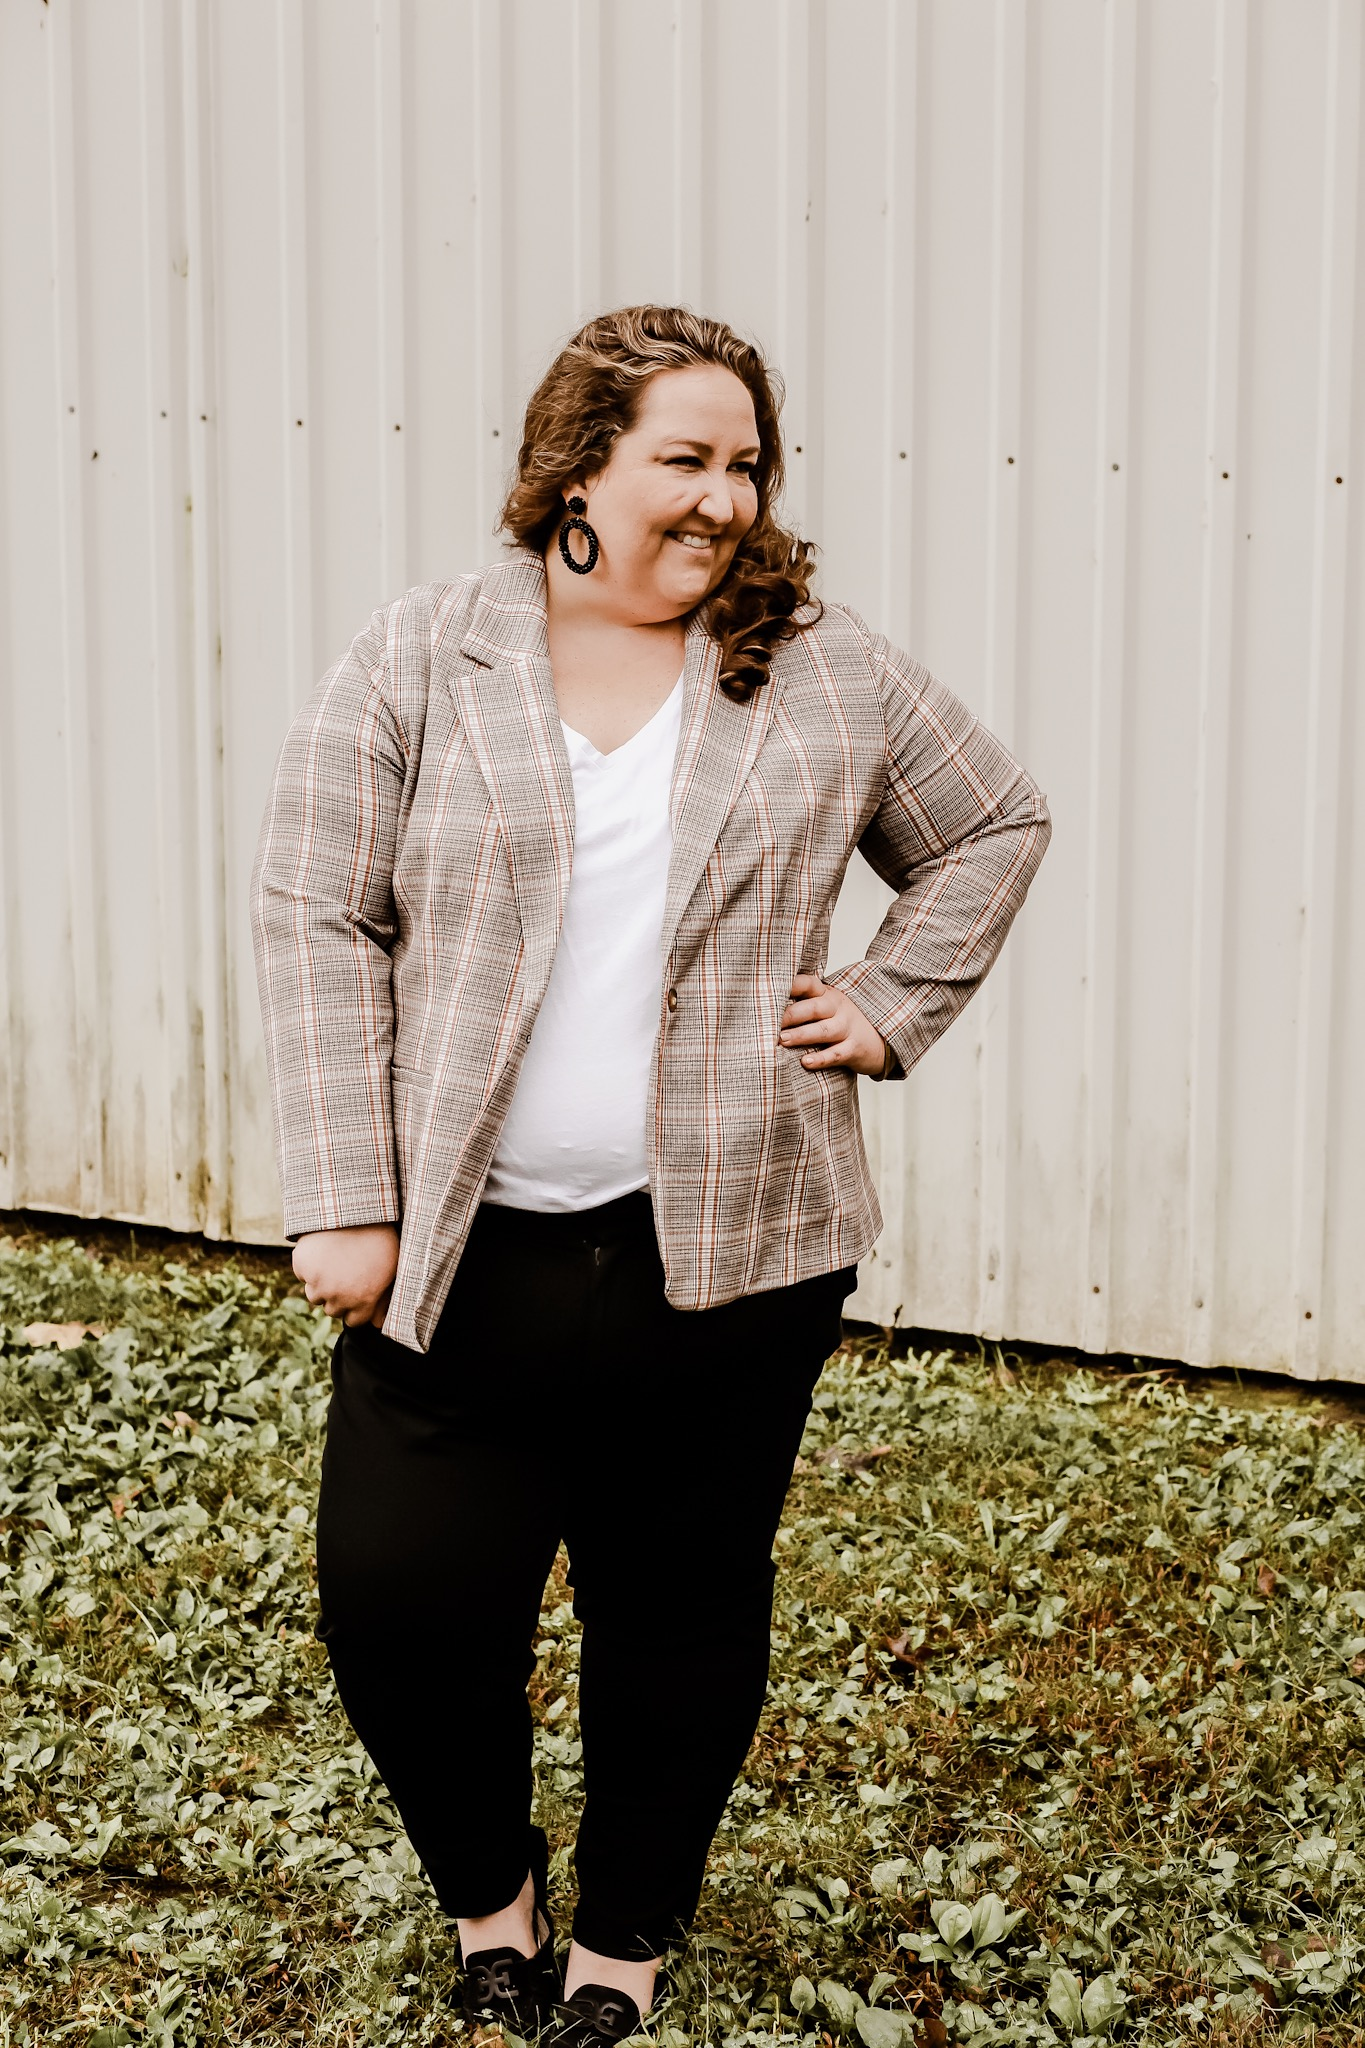 plaid blazer, plus size plaid blazer, plaid blazer outfit, black pants, plus size black pants, ootd, wiw, fall style, #rebekahelizstyle